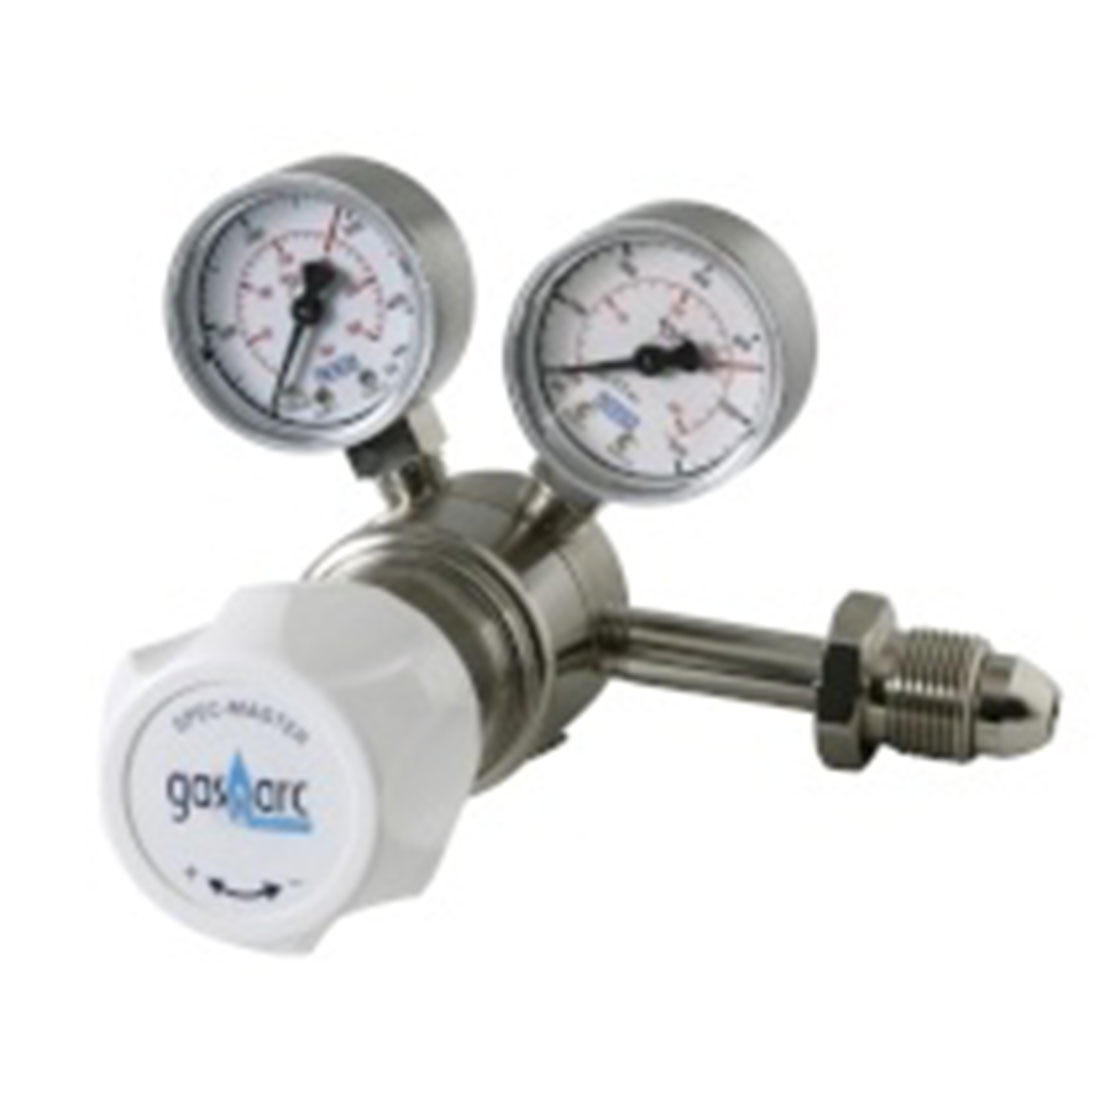 Spec-Master High Pressure Regulator